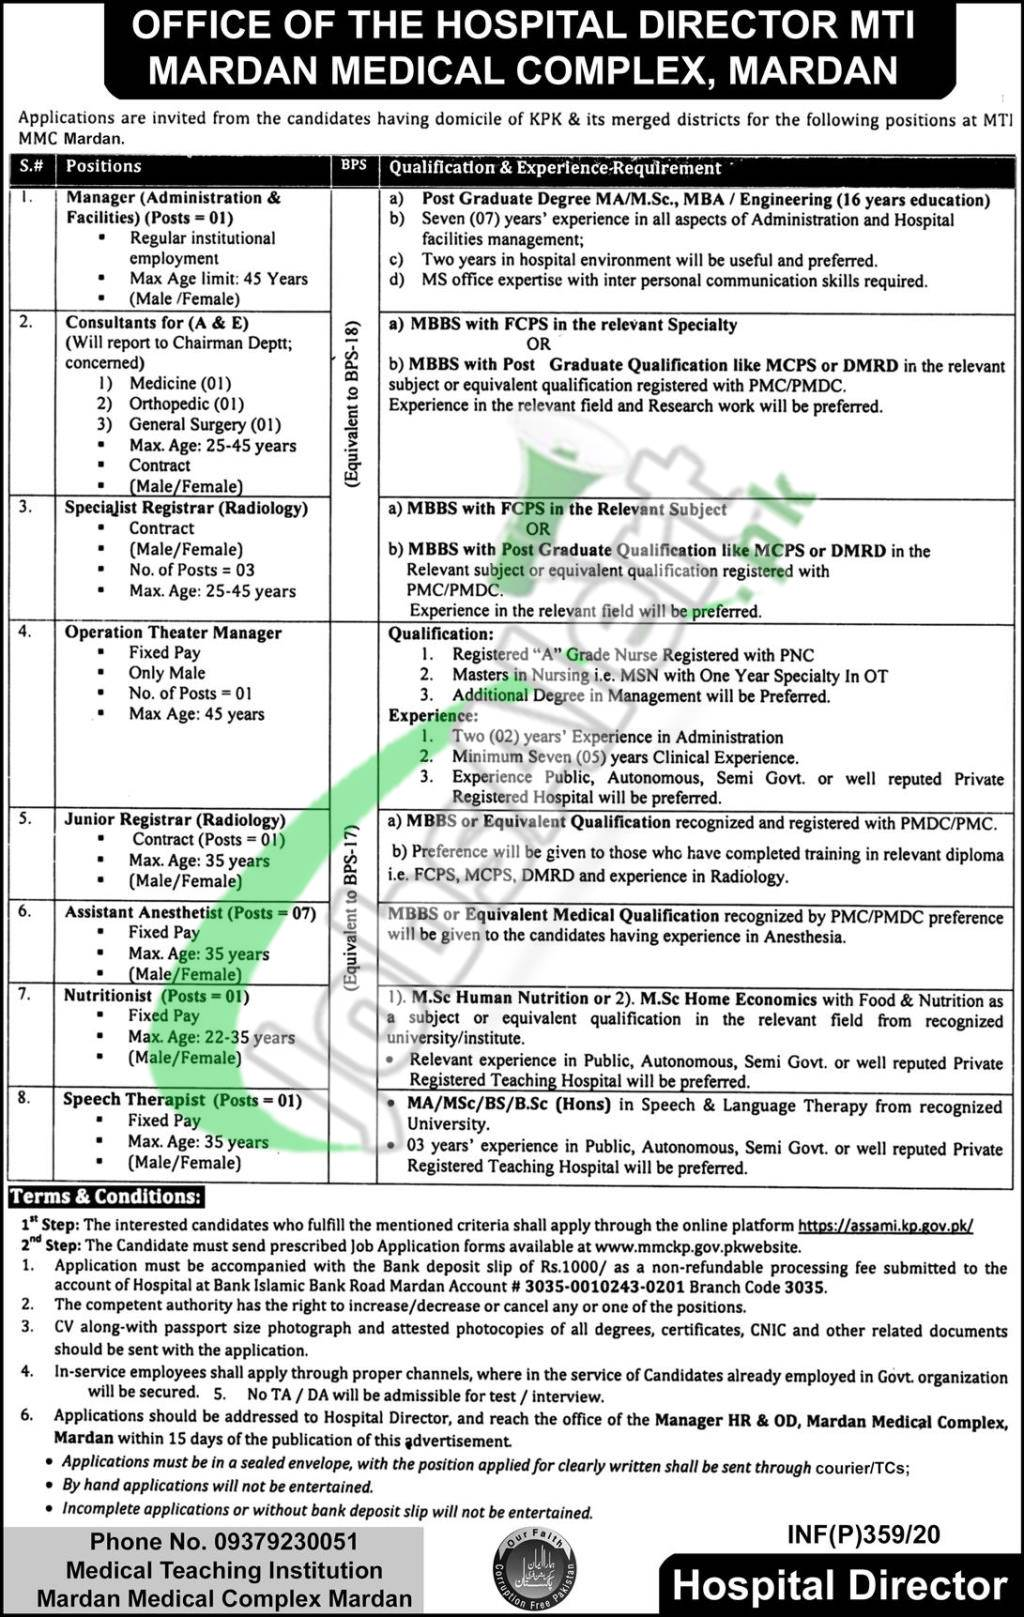 Office of the Hospital Director MTI, Mardan Medical Complex, Mardan